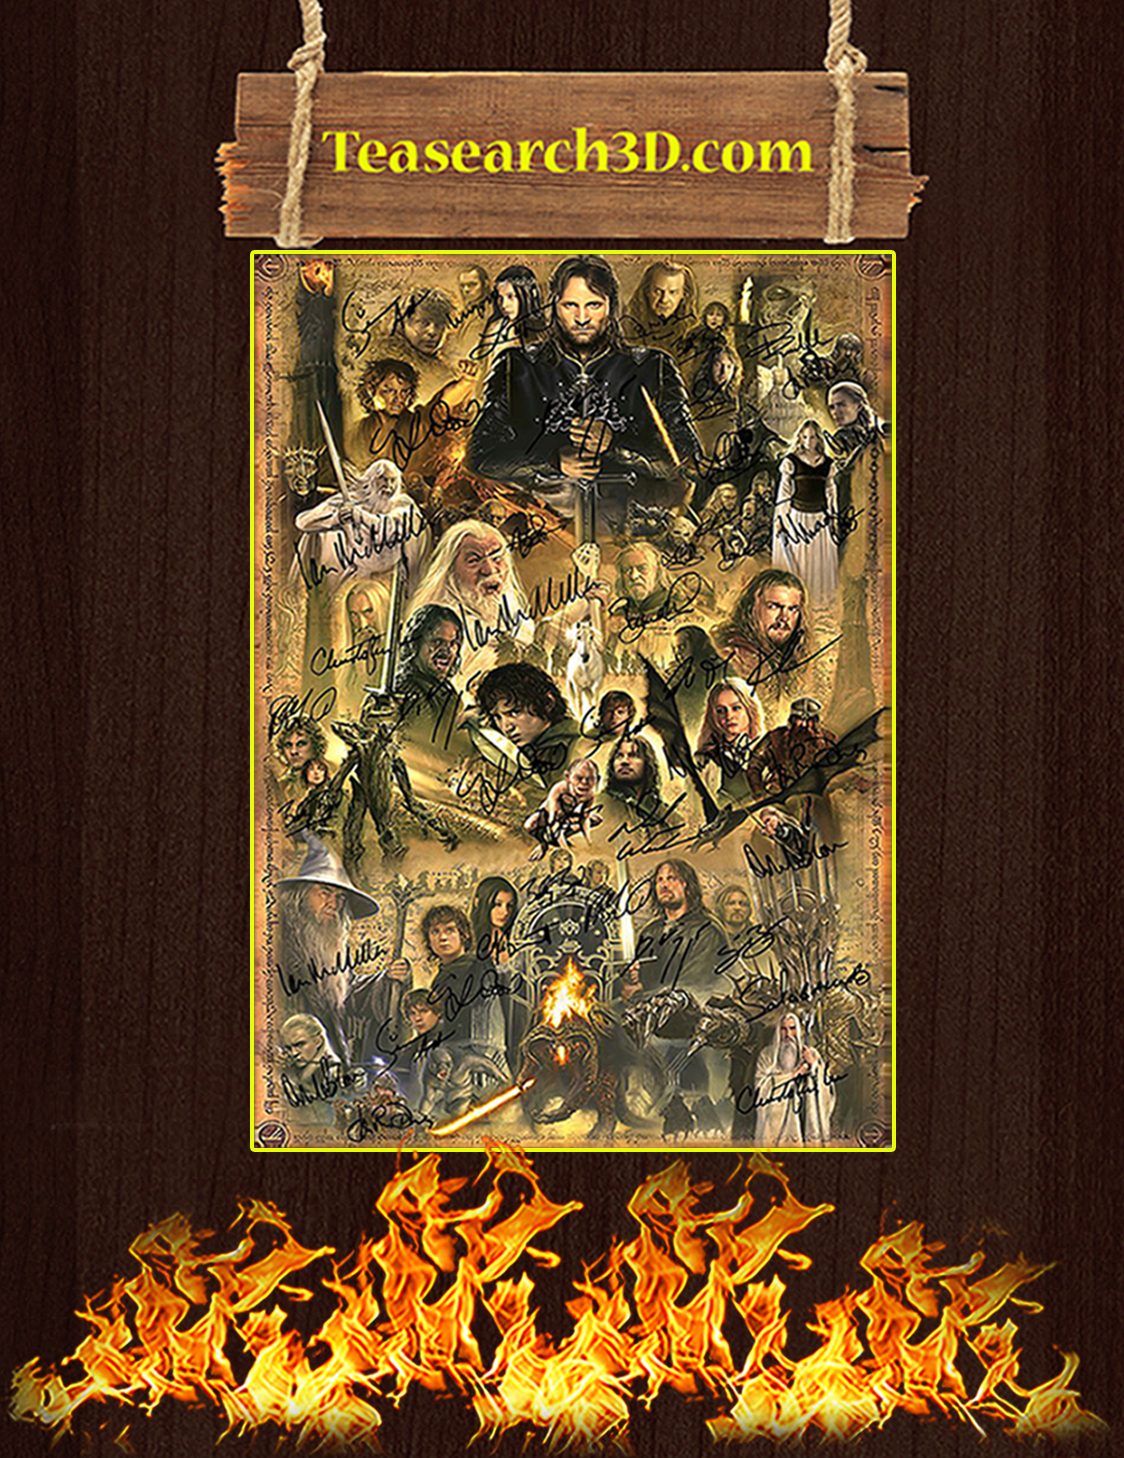 The lord of the rings signature poster A3